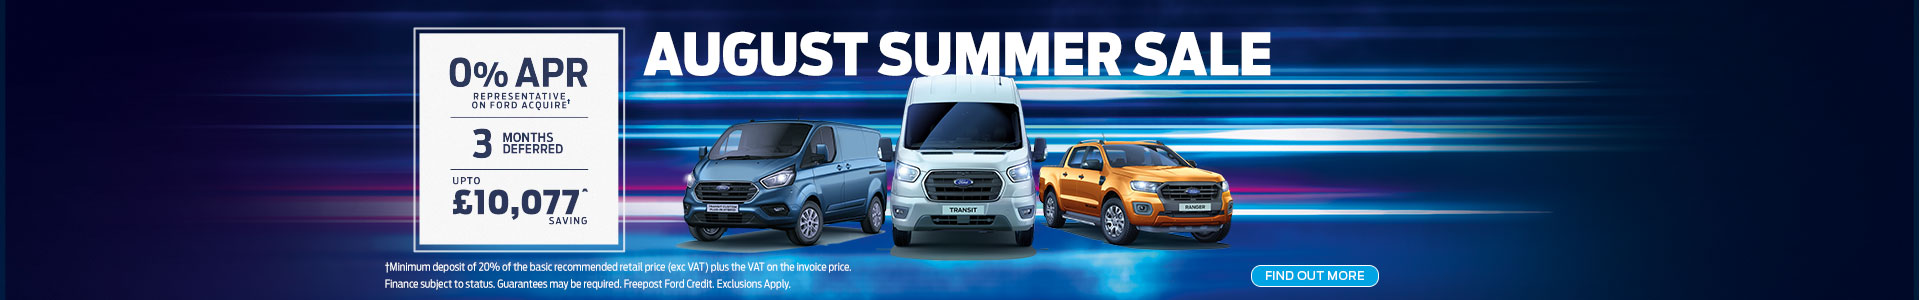 August Summer Sale now on!